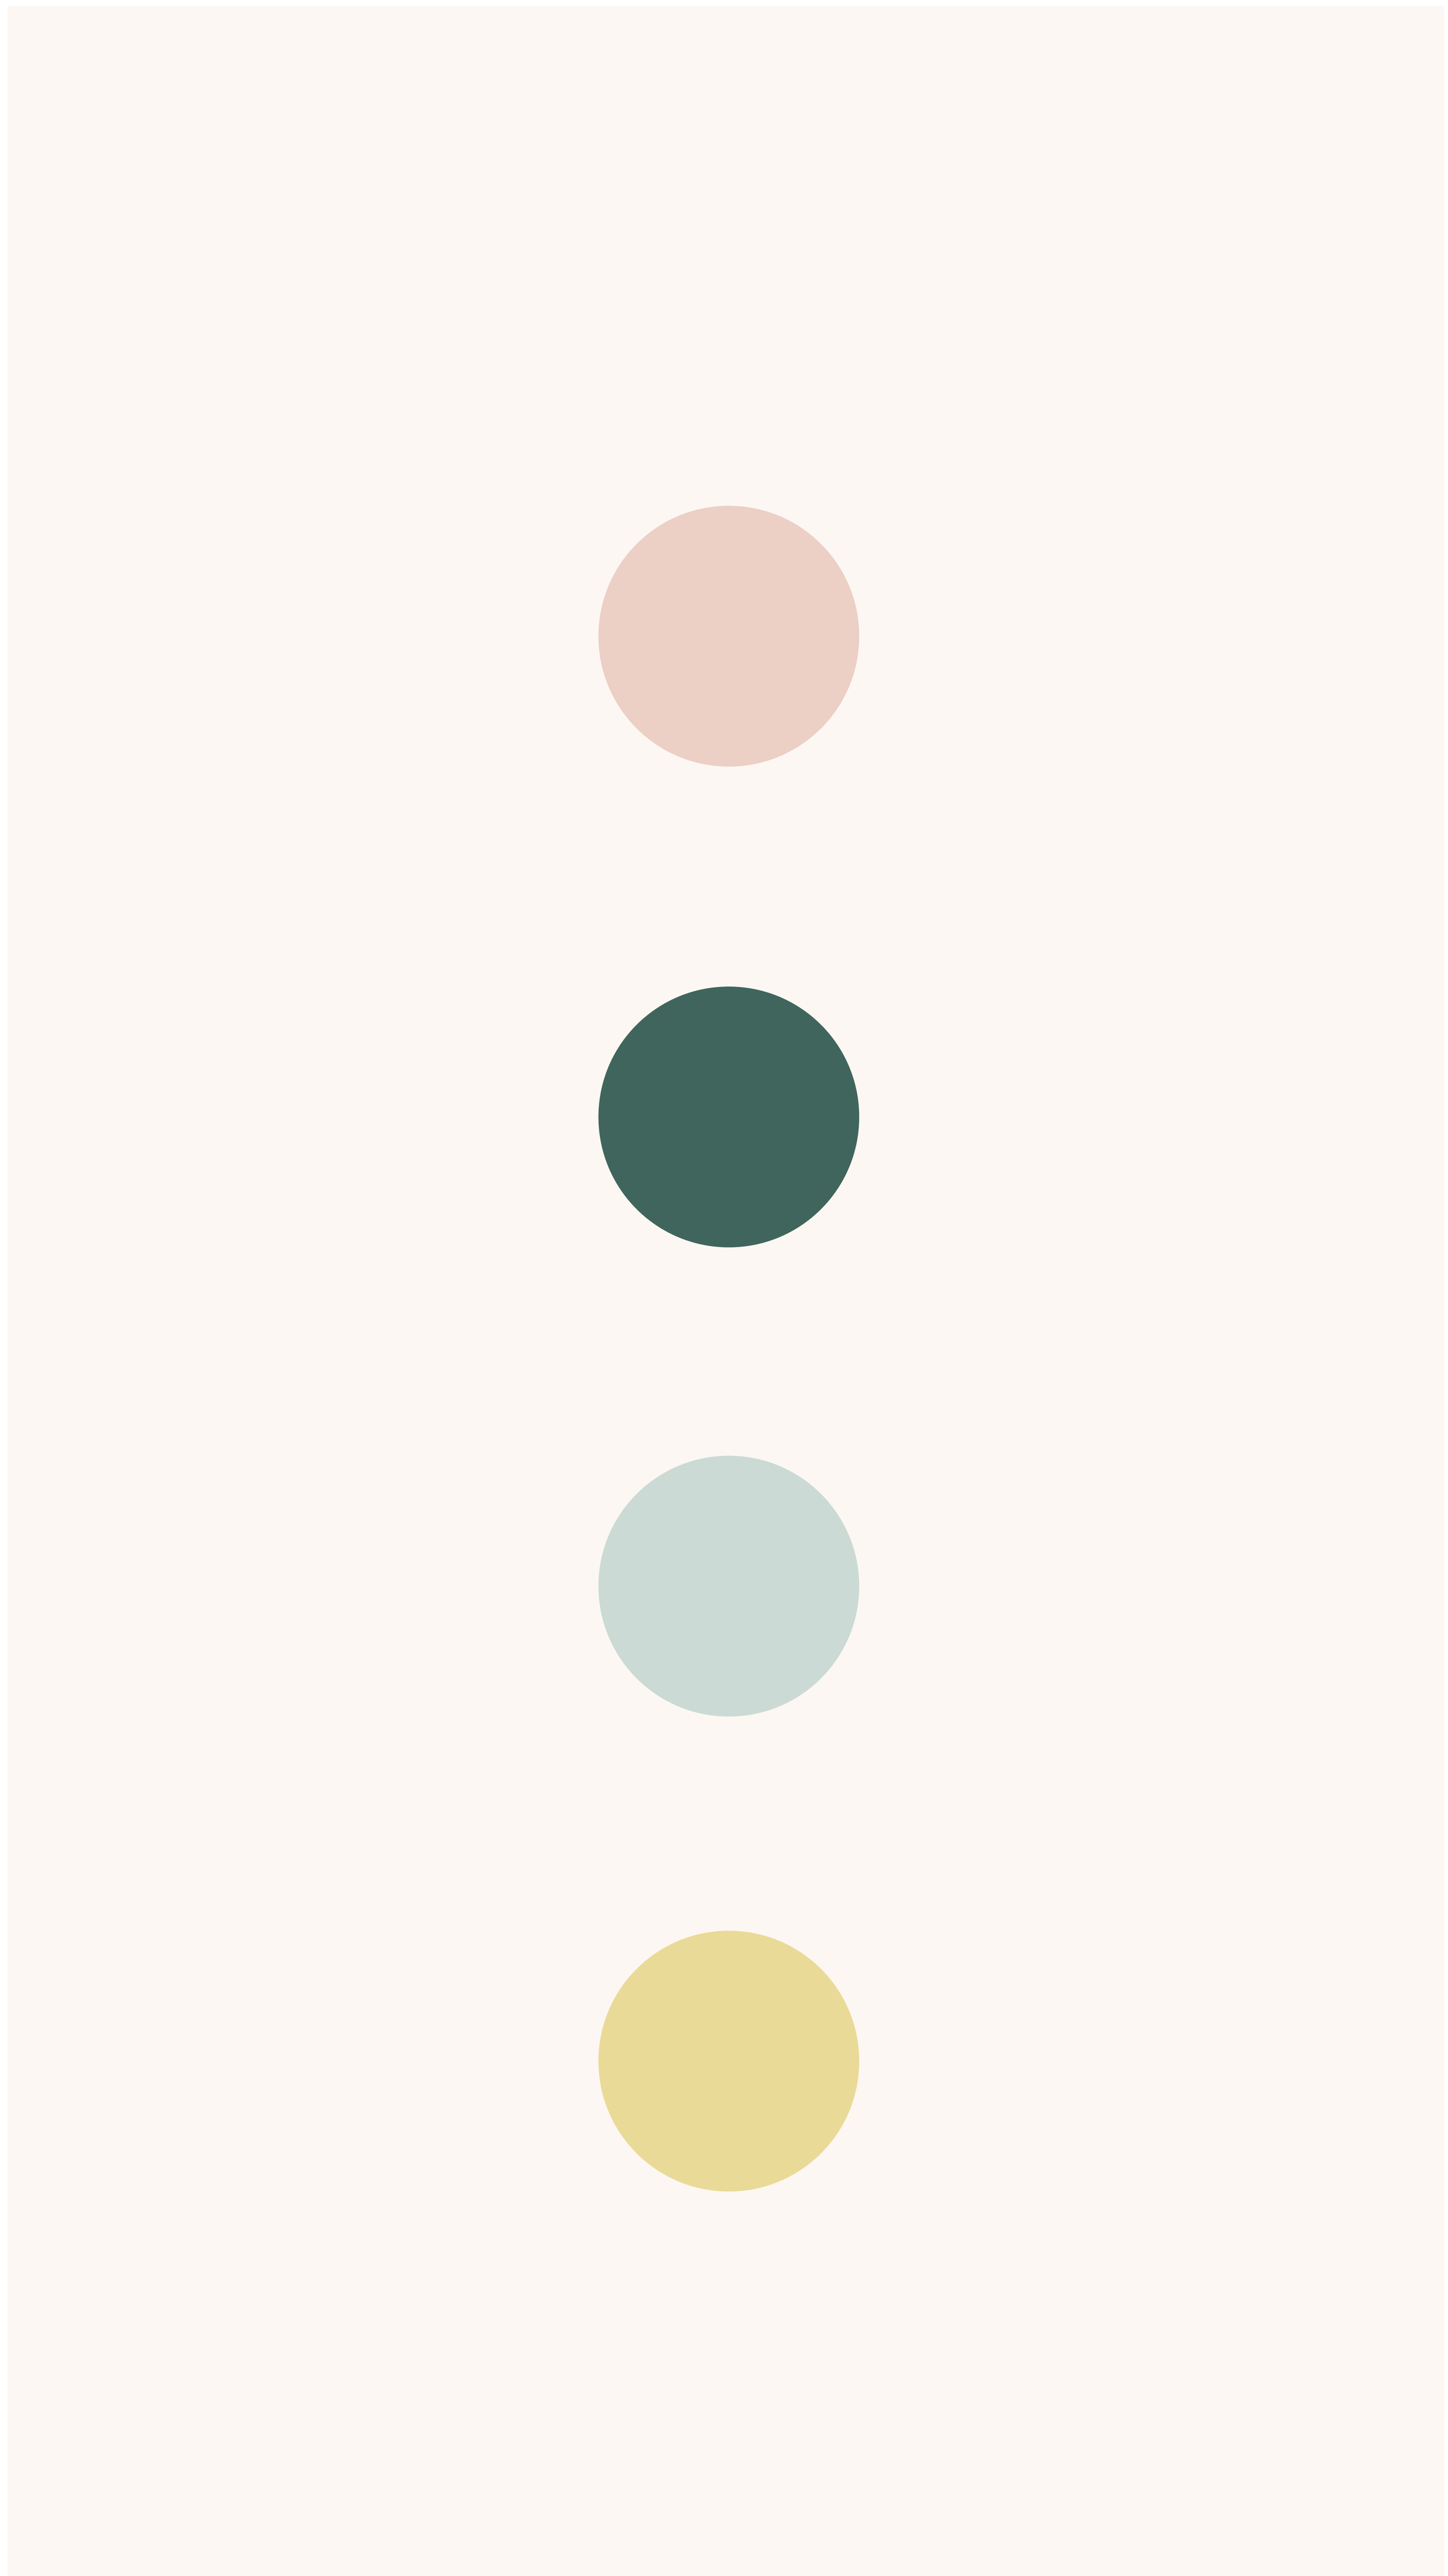 colorpalette-02.png